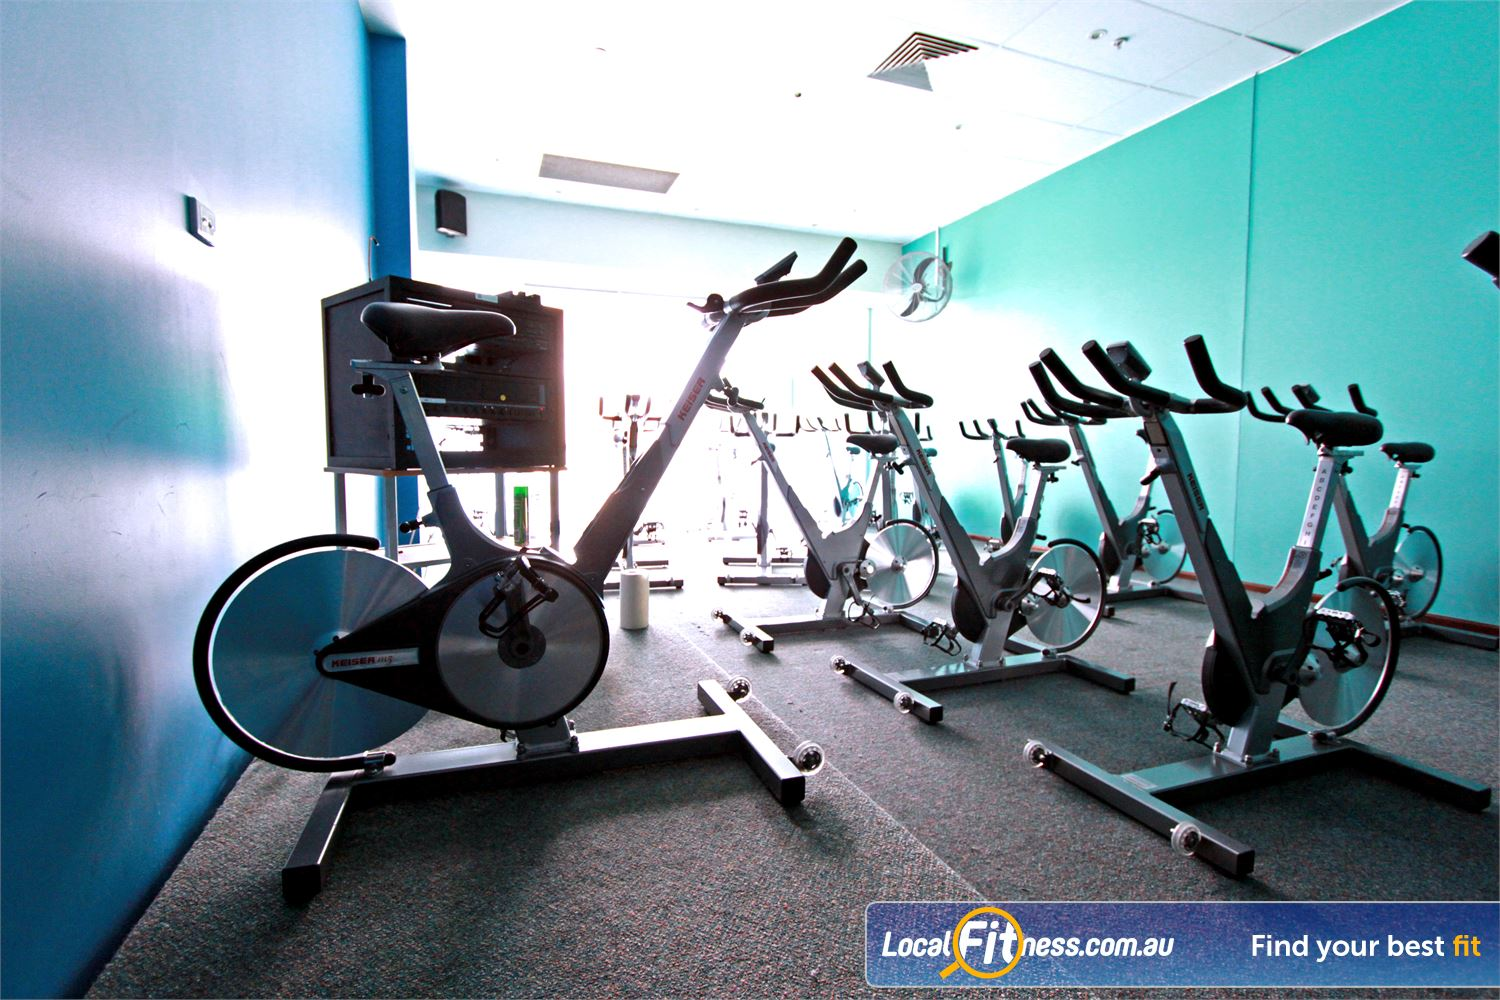 Fernwood Fitness Near Palmerston Dedicated spin cycle studio in Gungahlin.